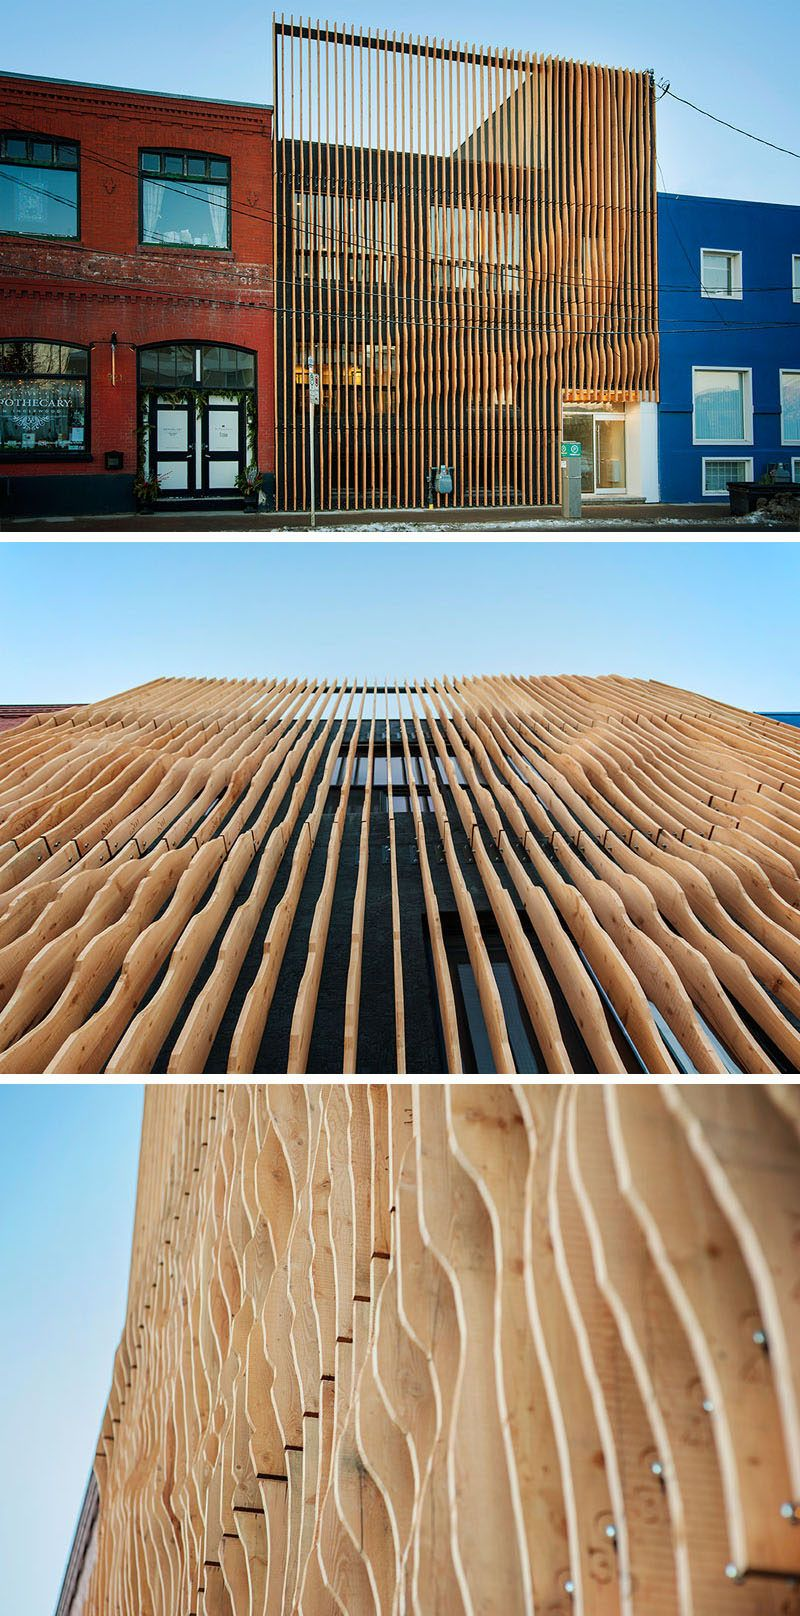 This Building Is Covered In Fins Made From 100 Year Old Reclaimed Aluminum Wiring Homes Alberta Using Fir An Abandoned Grain Storehouse Design Firm Moda Created A Screen Of Over Top The Concrete